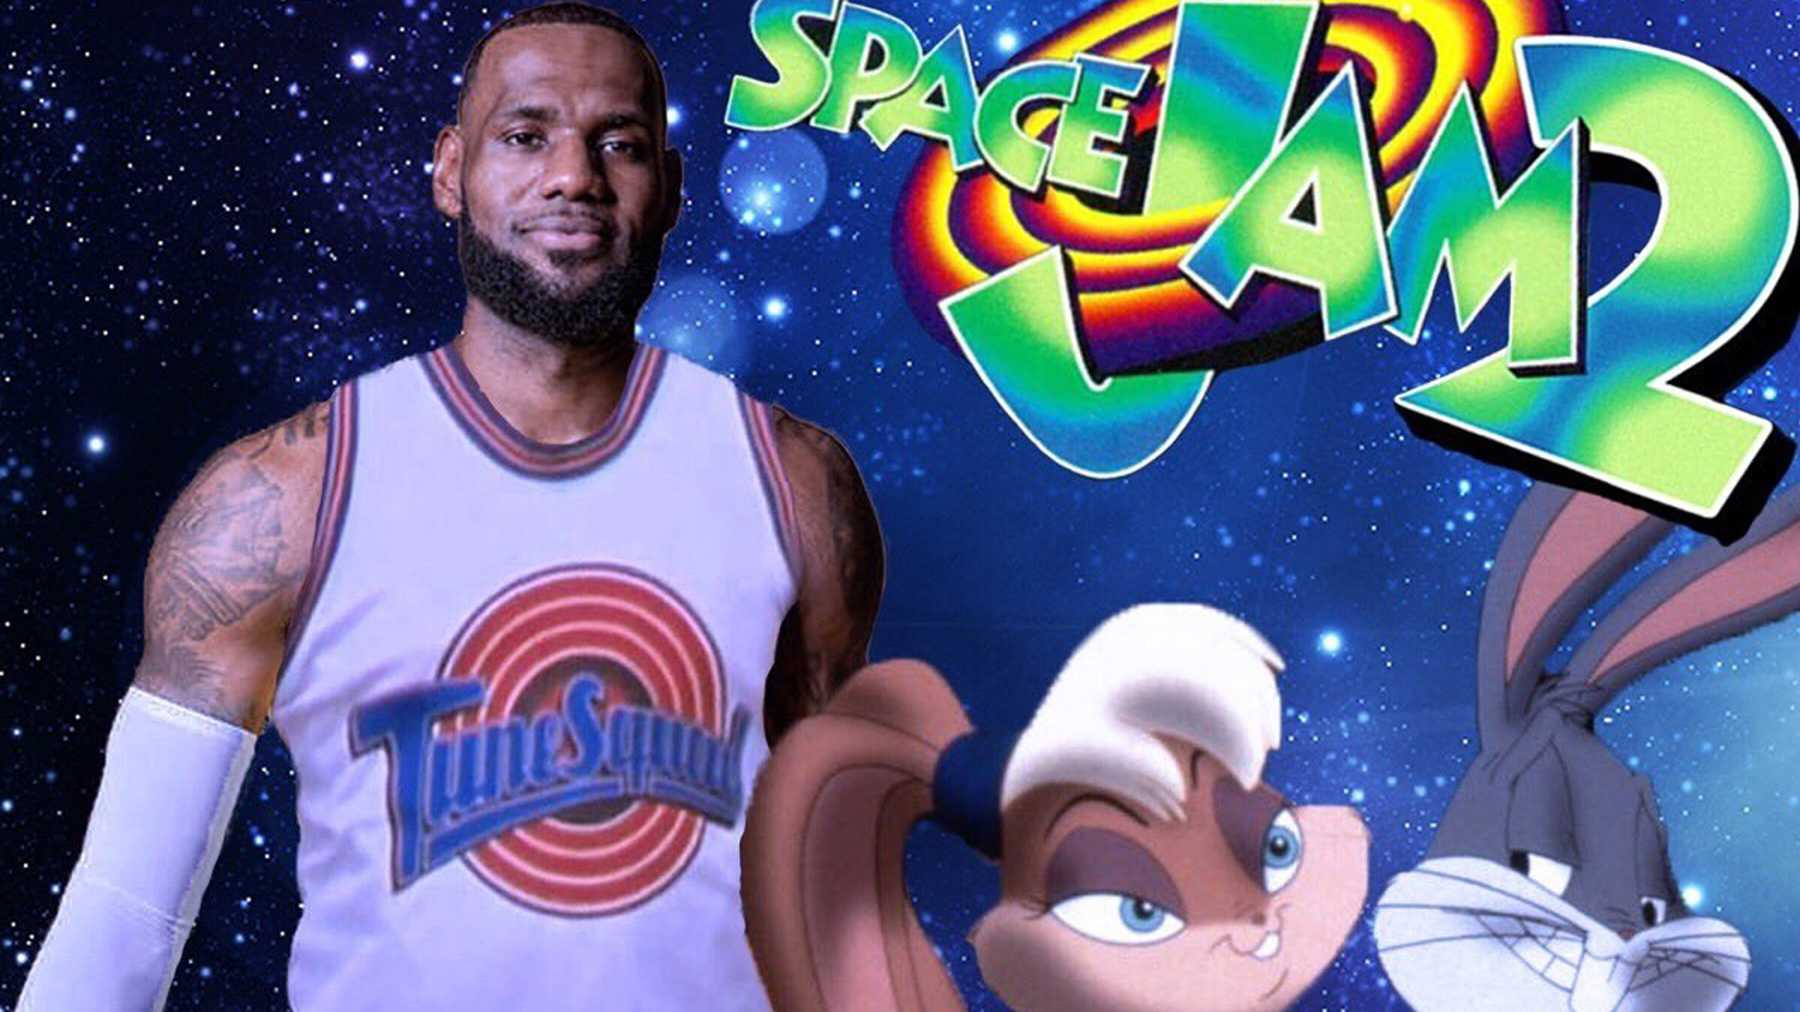 Space Jam 2 Gets Release Date And Retro Teaser Image | Movies | Empire